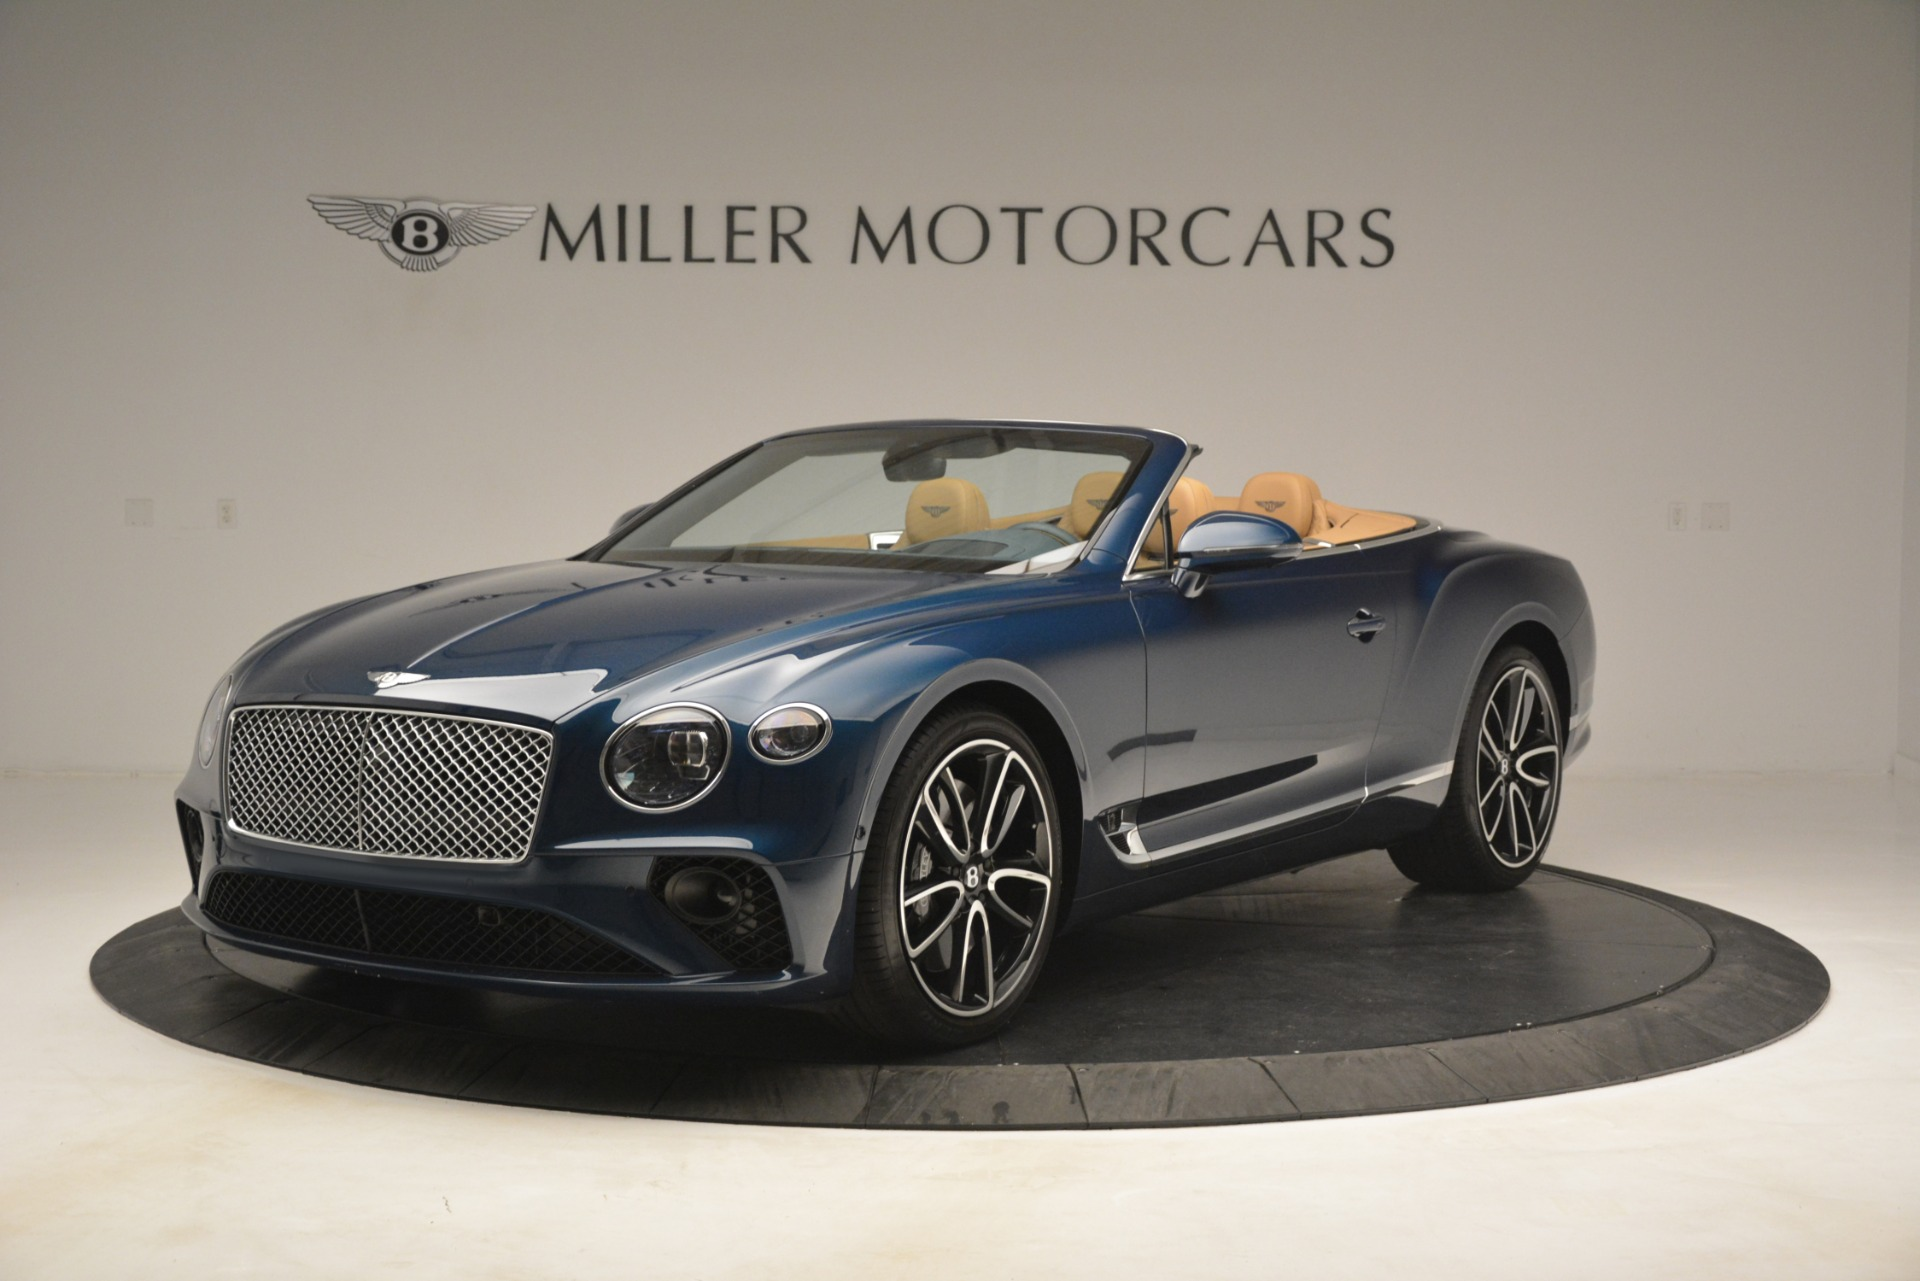 New 2020 Bentley Continental GTC  For Sale In Greenwich, CT. Alfa Romeo of Greenwich, 20GTC 2865_main